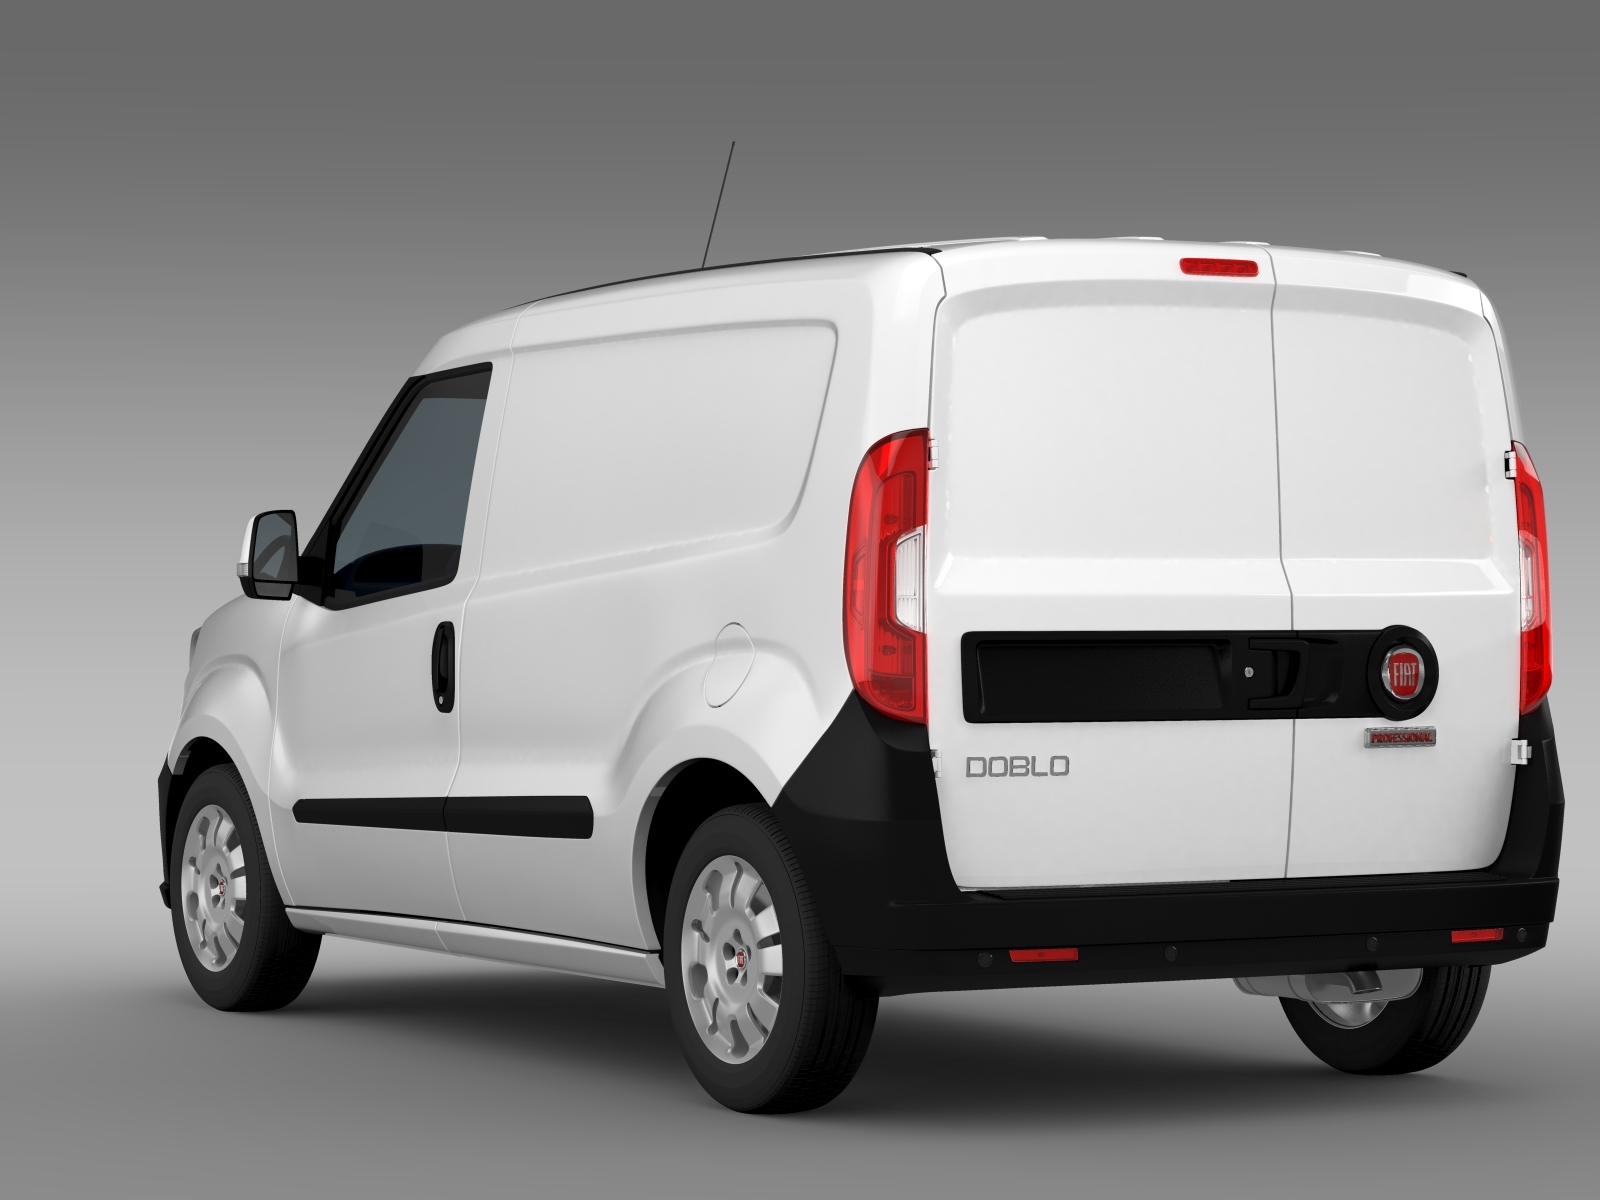 fiat doblo cargo 263 2015 by creator 3d 3docean. Black Bedroom Furniture Sets. Home Design Ideas